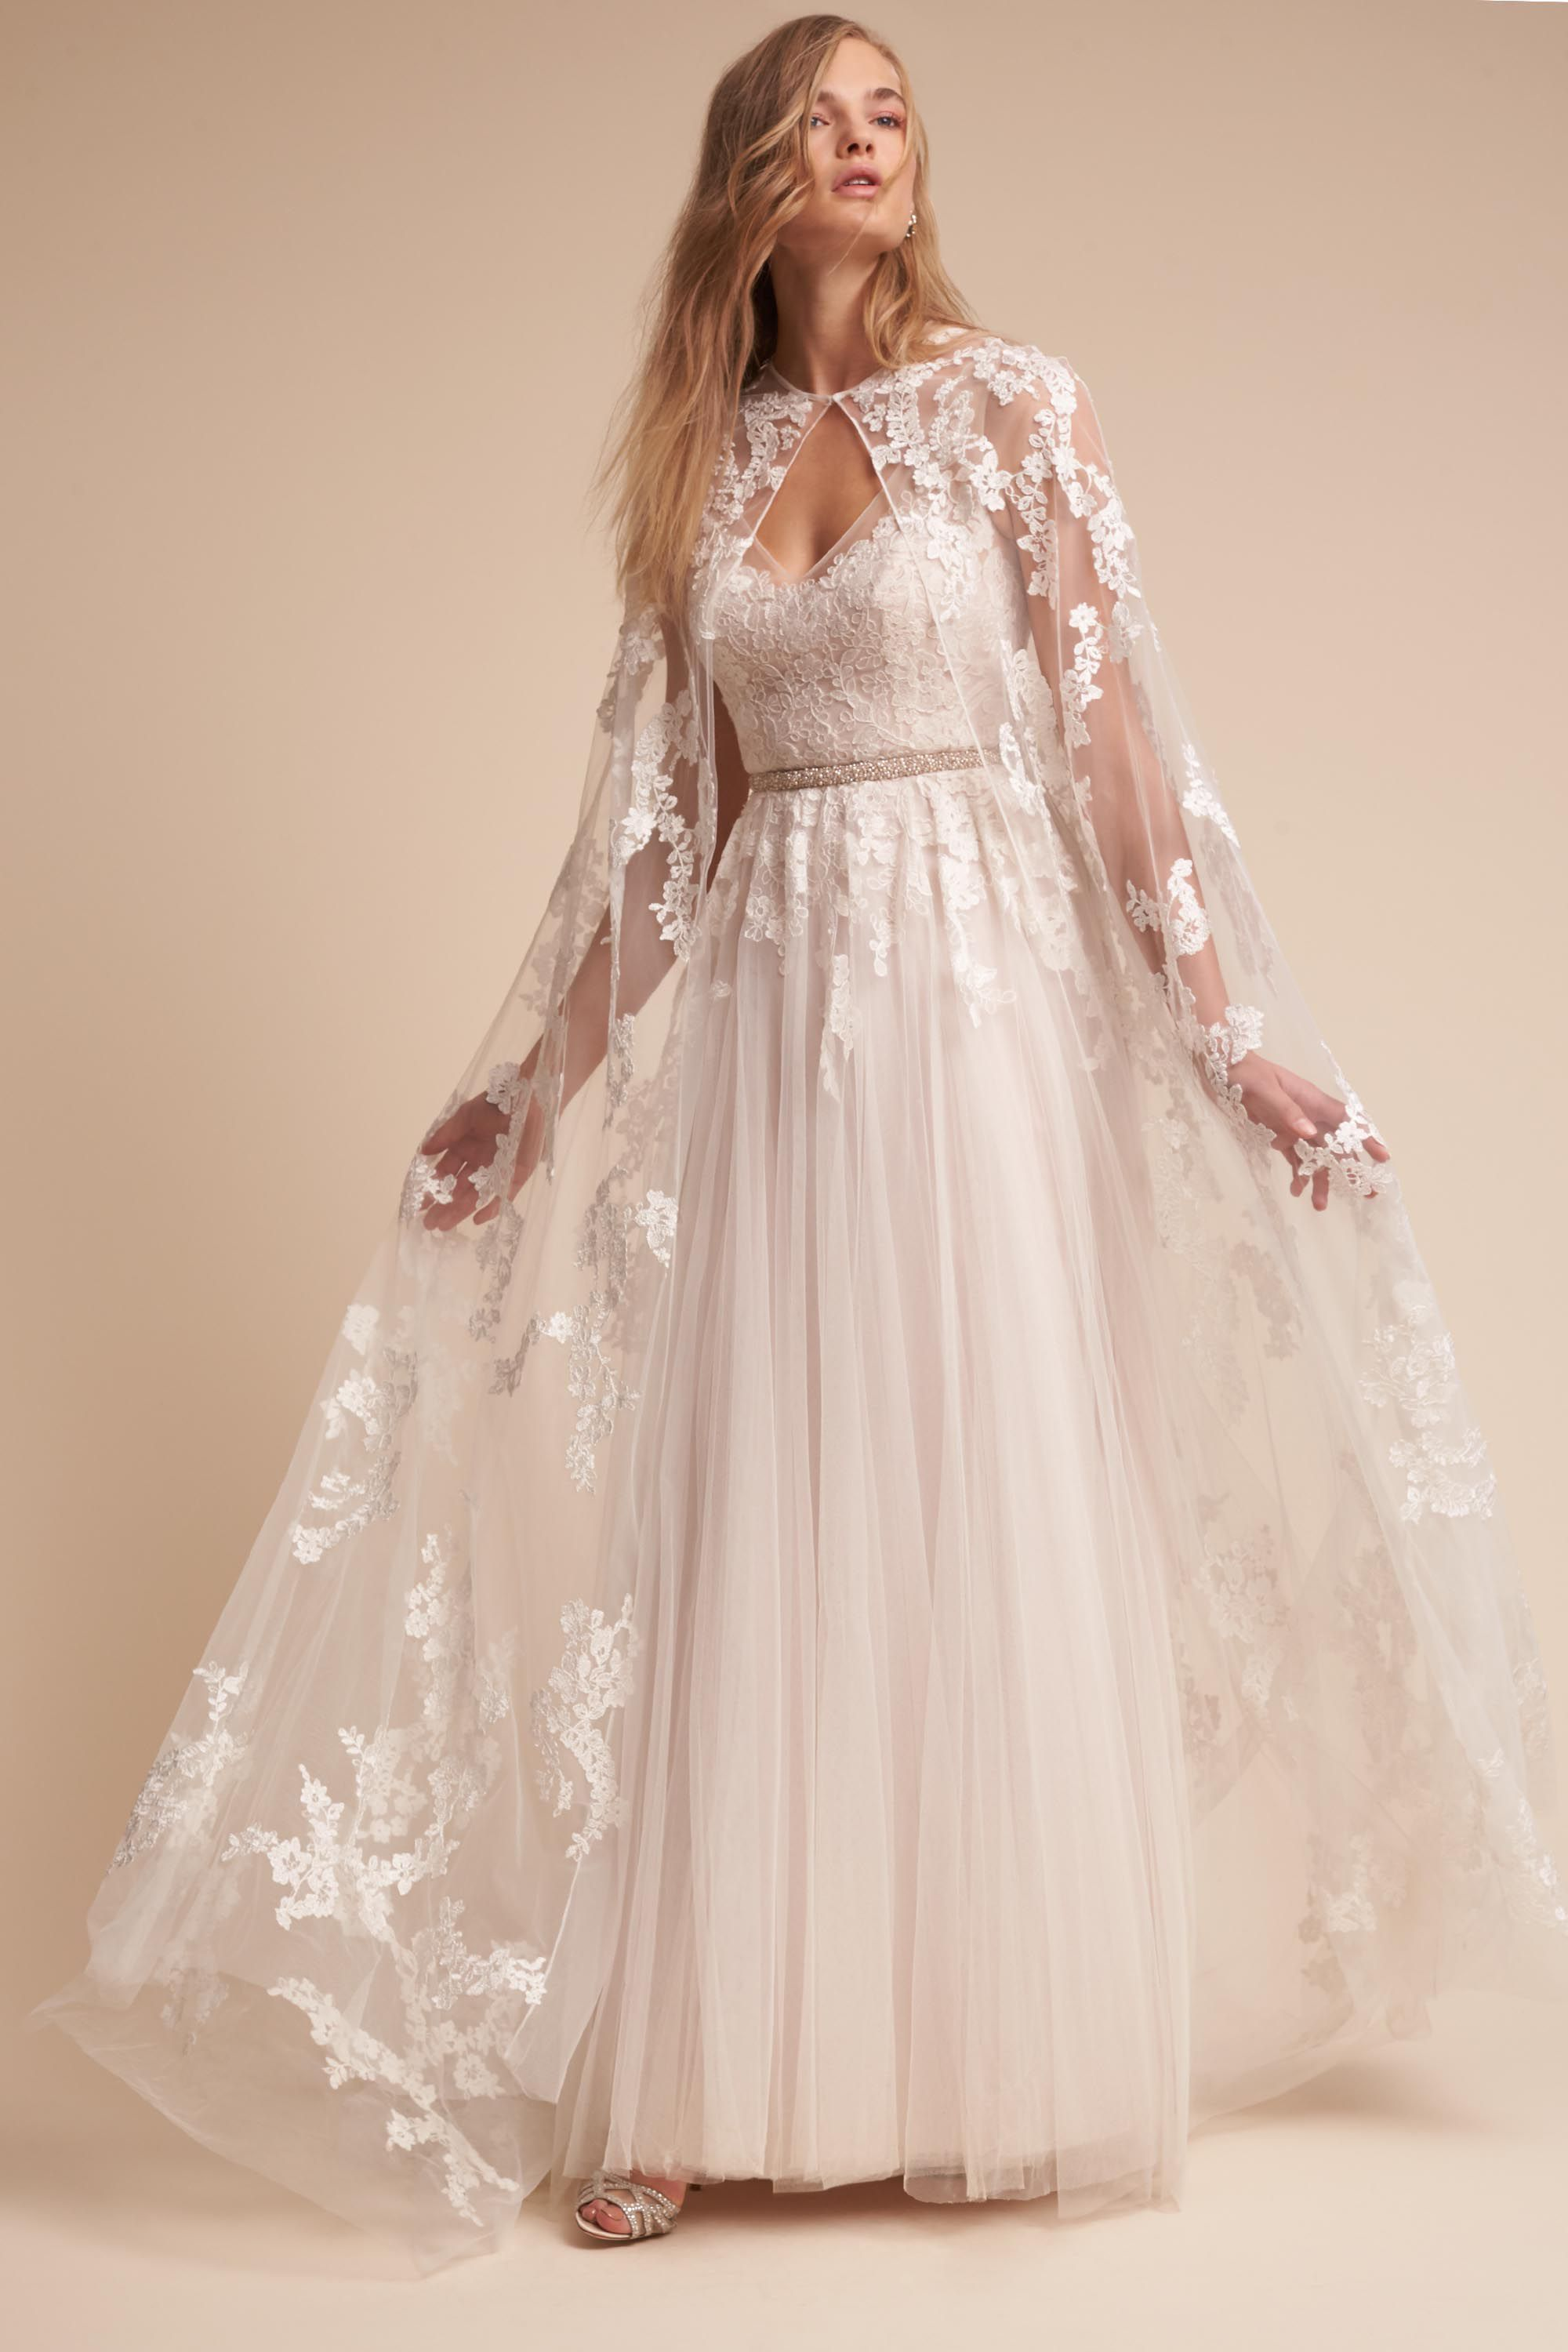 Pin by inge konther on wedding dresses in pinterest cape